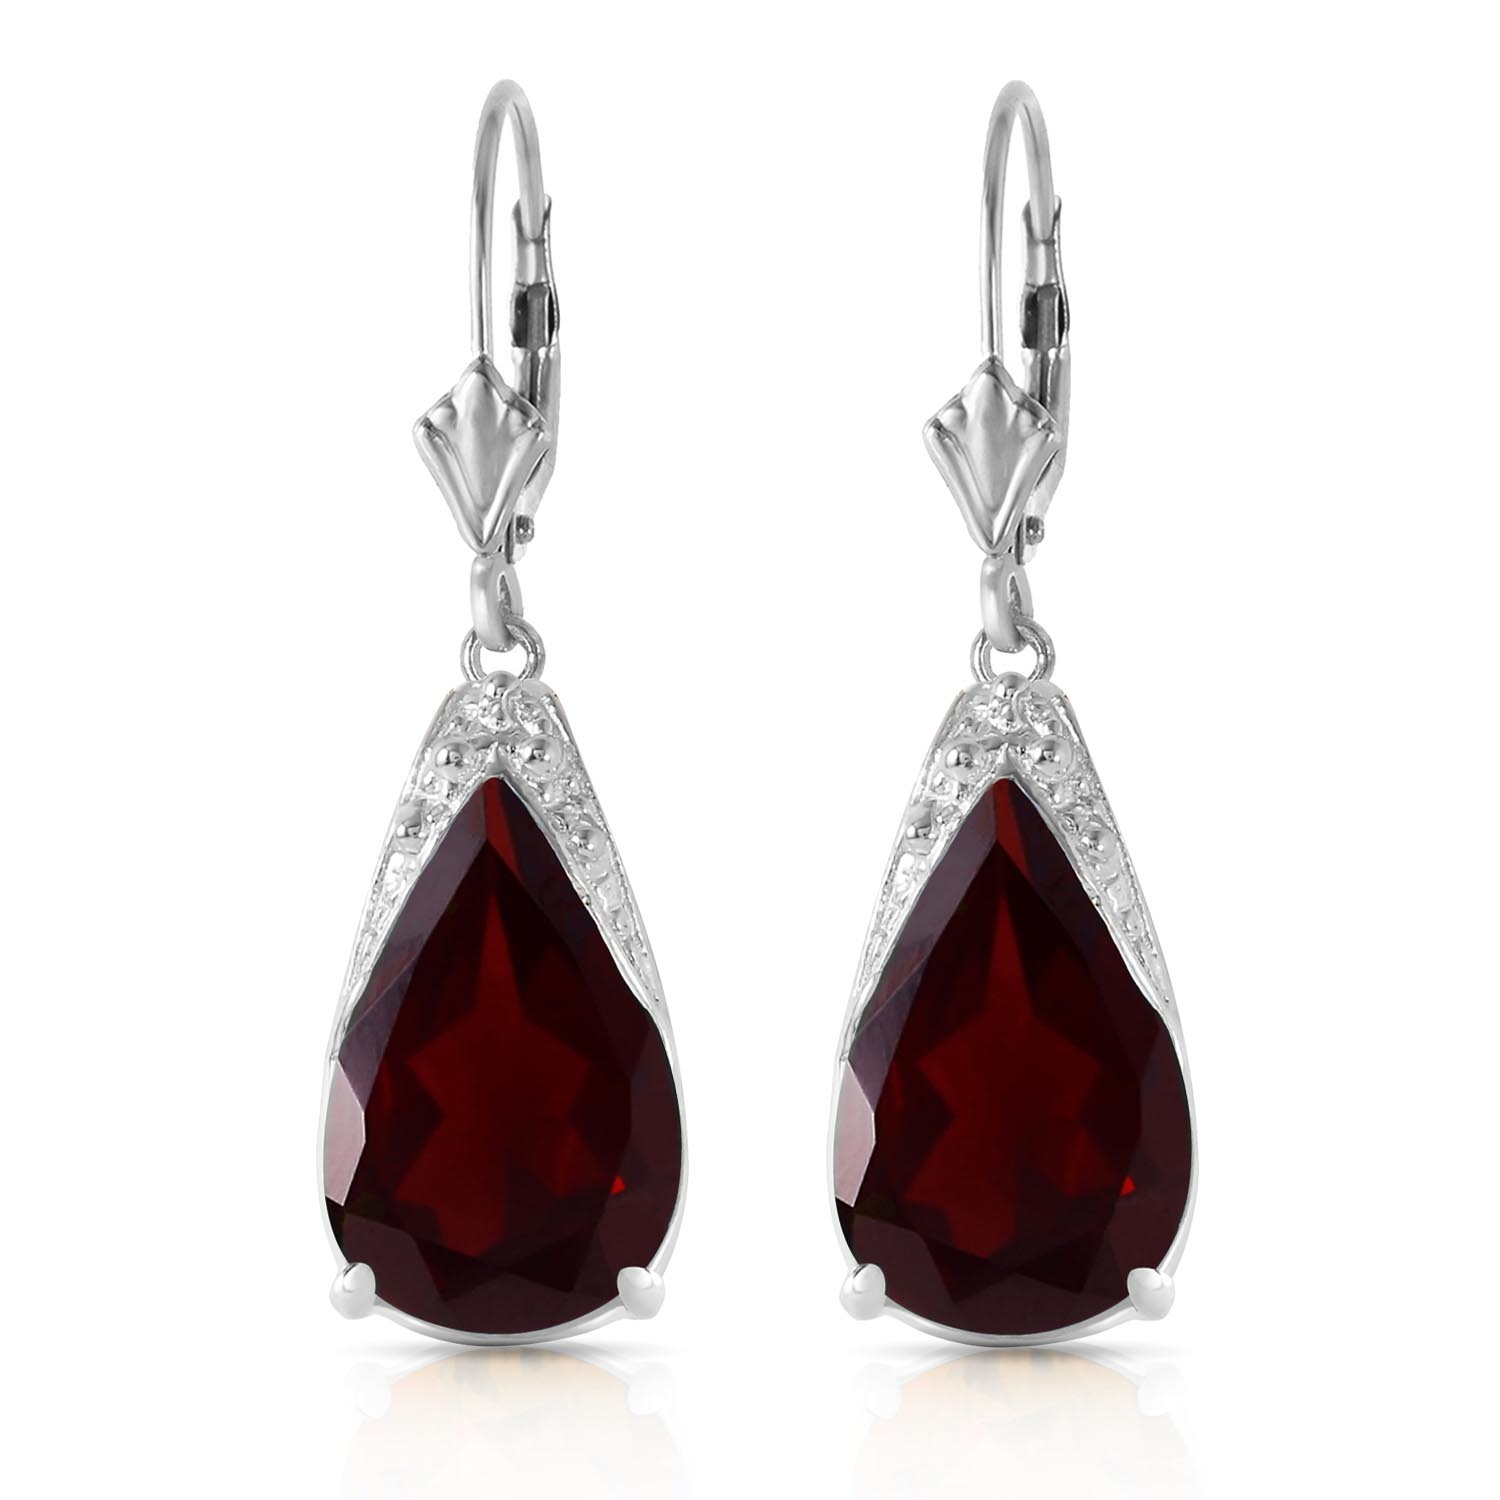 Garnet Snowcap Drop Earrings 10.0ctw in 14K White Gold